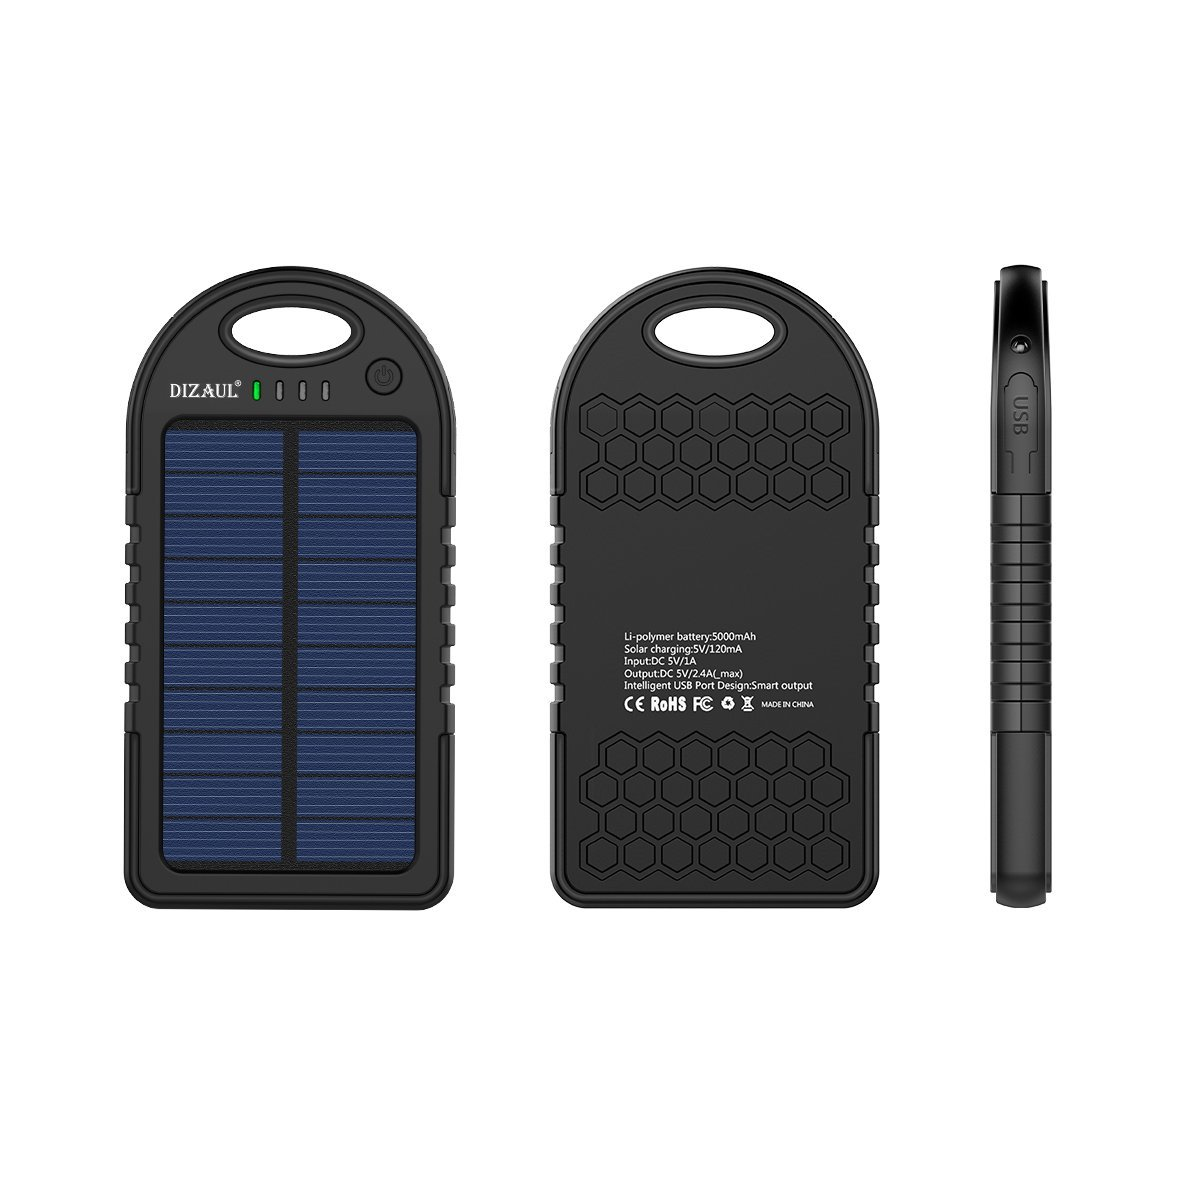 Portable Cellphone Battery Charger For Iphone